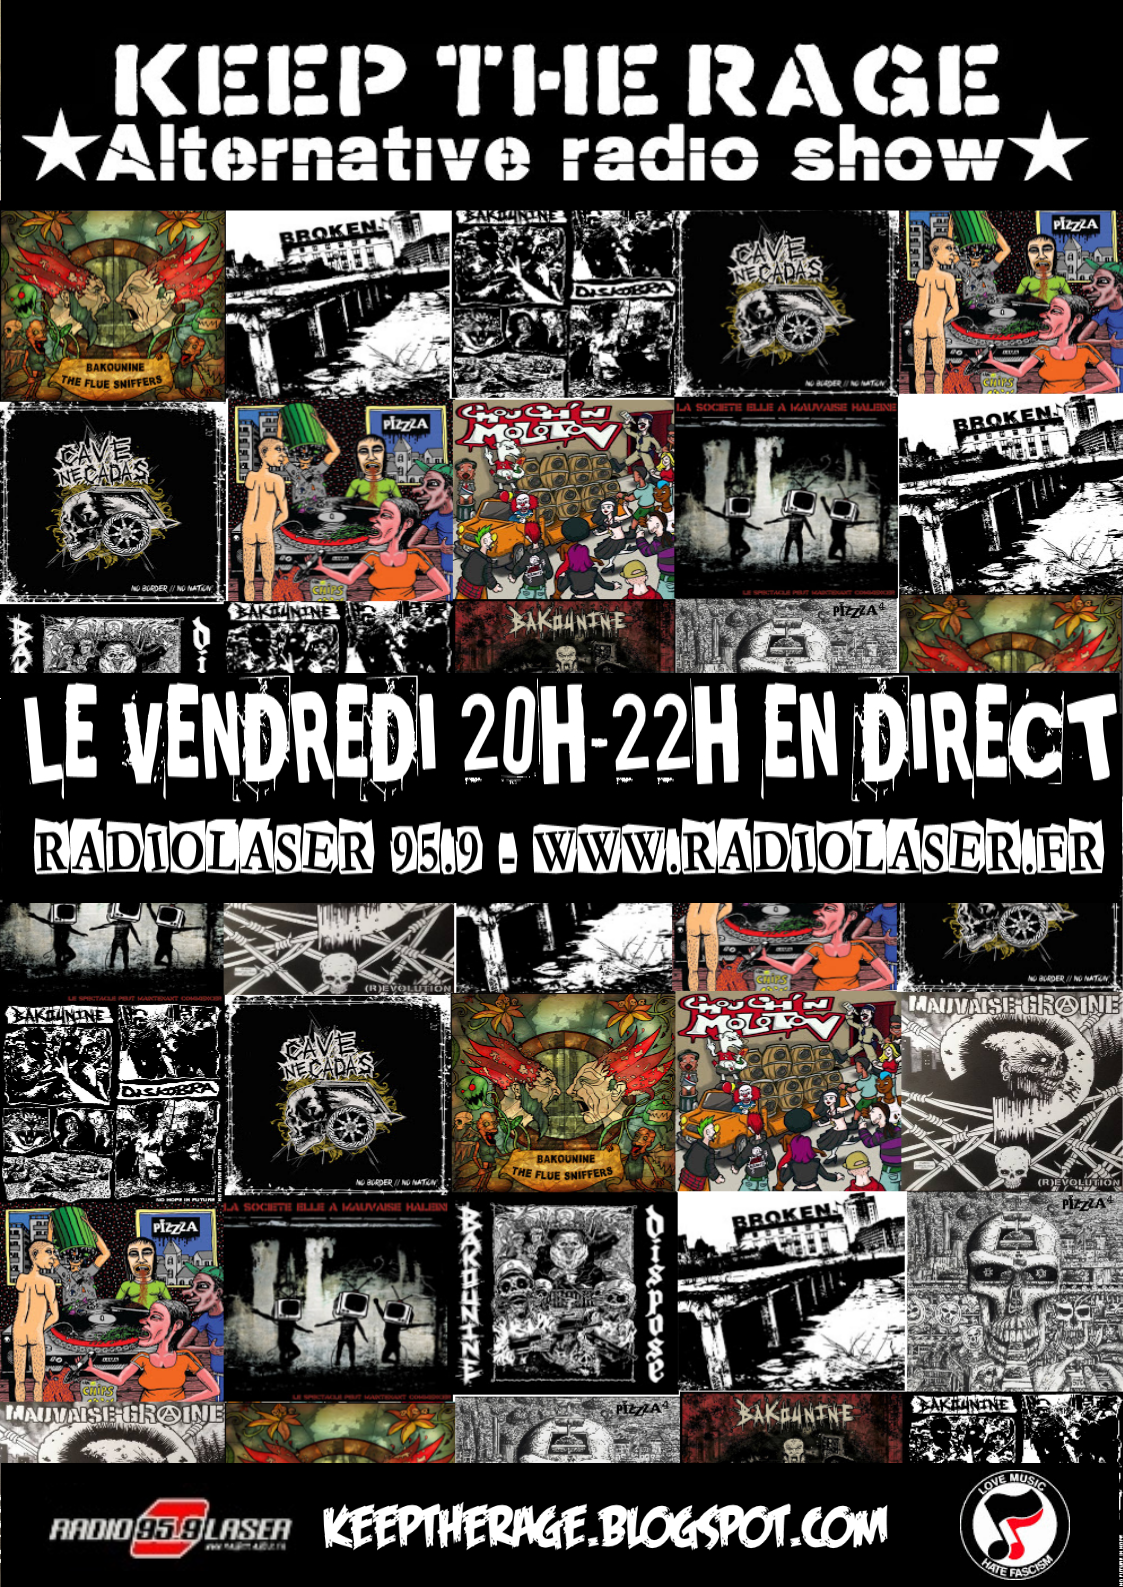 Keep The Rage #302 - Vendredi 13 décembre - Playlist et Podcast